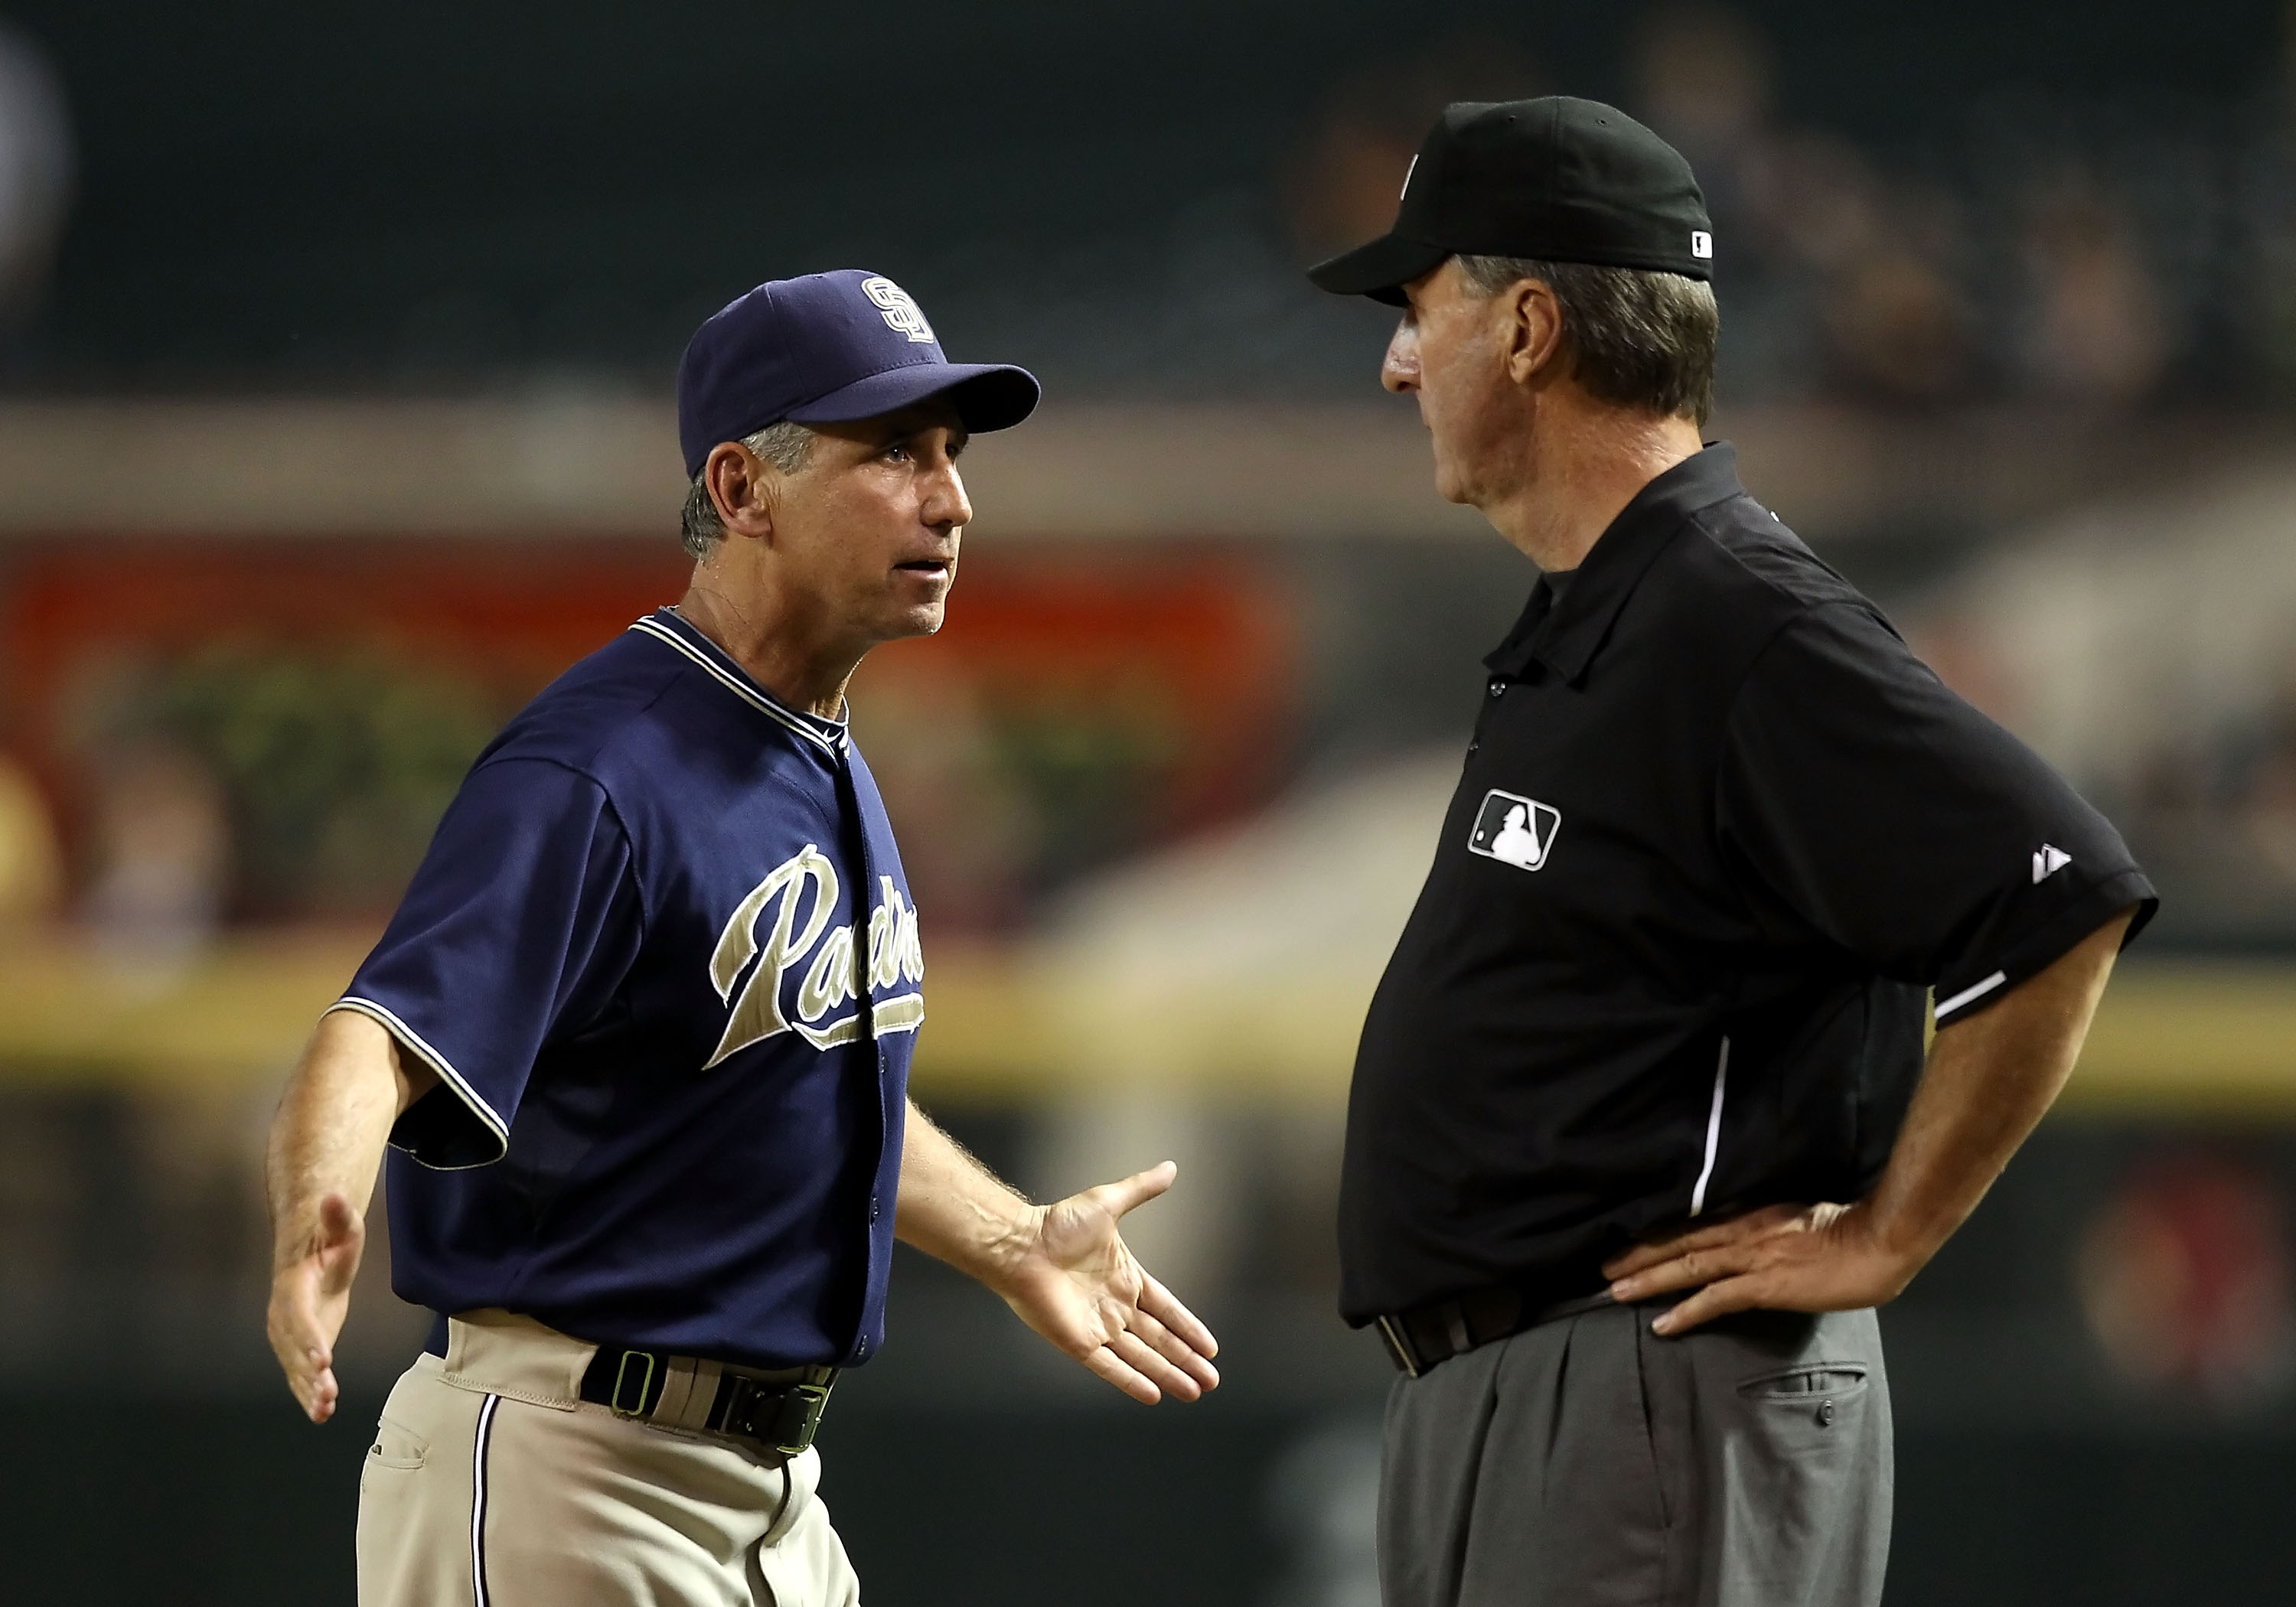 PHOENIX - AUGUST 30:  Manager Bud Black of the San Diego Padres reacts to first base umpire Tim McClelland after a disputed call during the fifth inning of the Major League Baseball game against the Arizona Diamondbacks at Chase Field on August 30, 2010 i